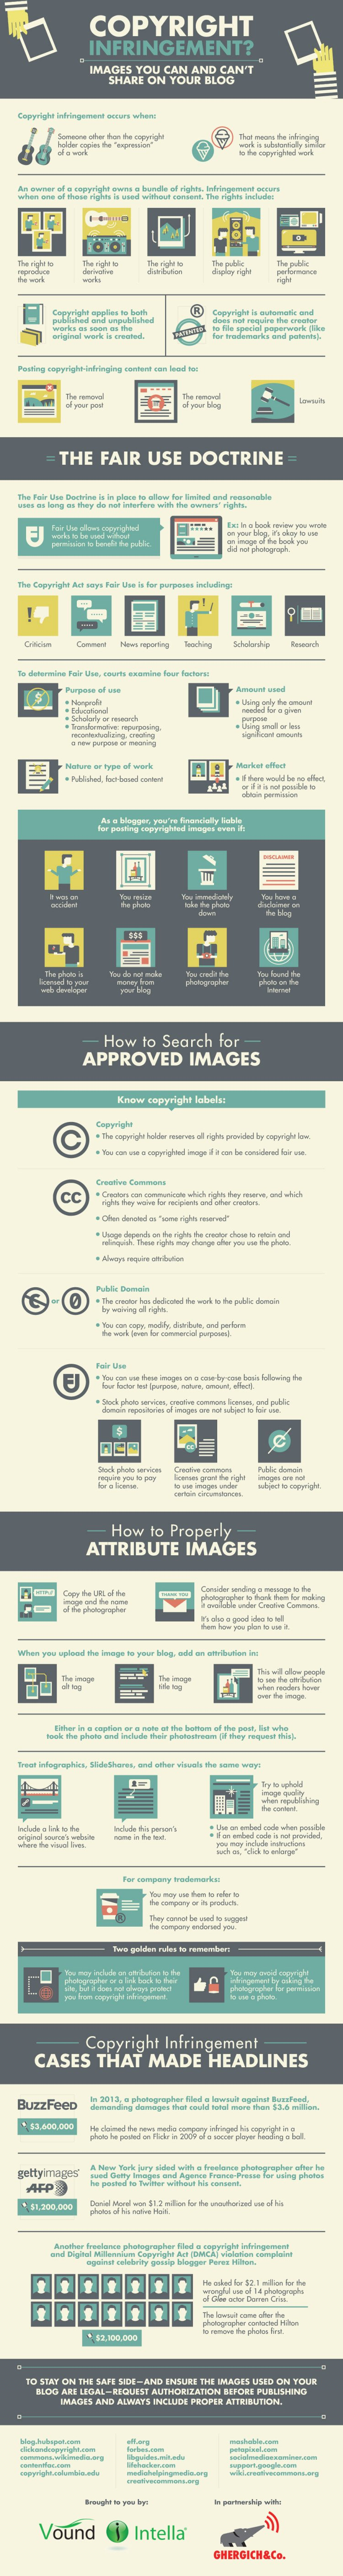 copyright-infringement-infographic